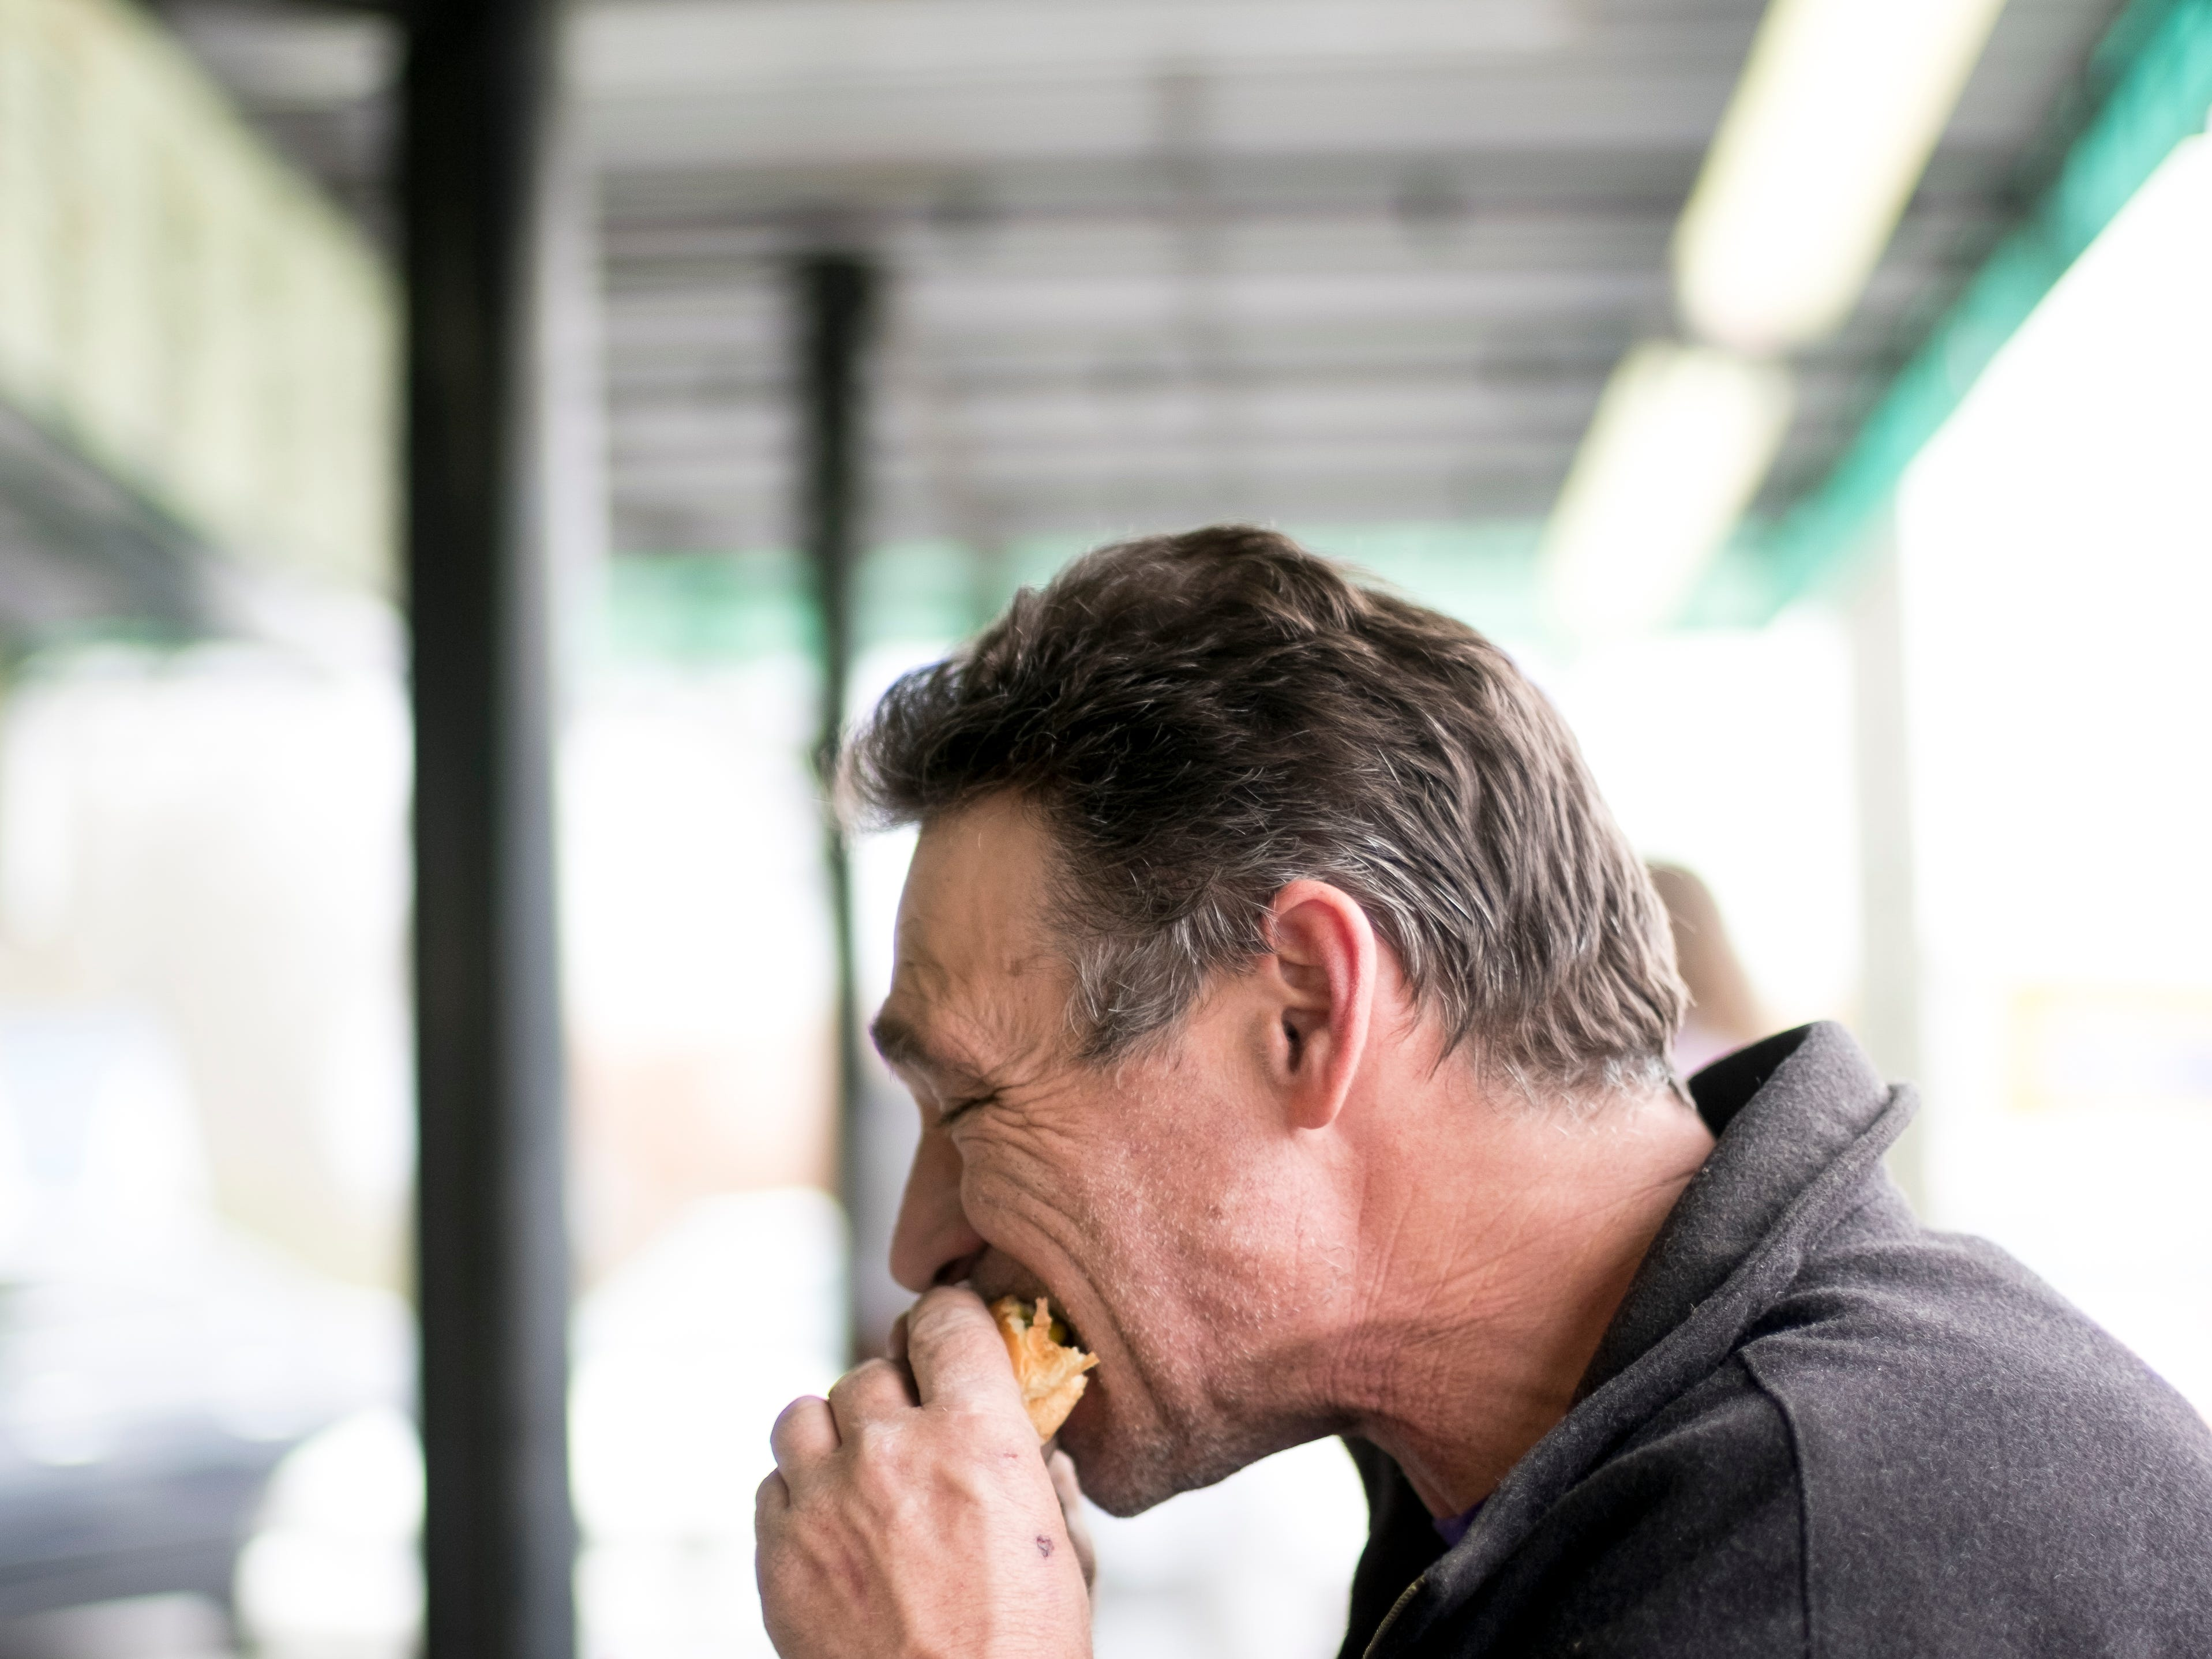 Richard Miller takes a bite of his burger during a stop at Cardin's Drive-In on Asheville Highway in Knoxville, Tennessee on Friday, April 5, 2019. The popular drive-in is celebrating 60 years of business this Saturday with sixty cent ice cream cones.